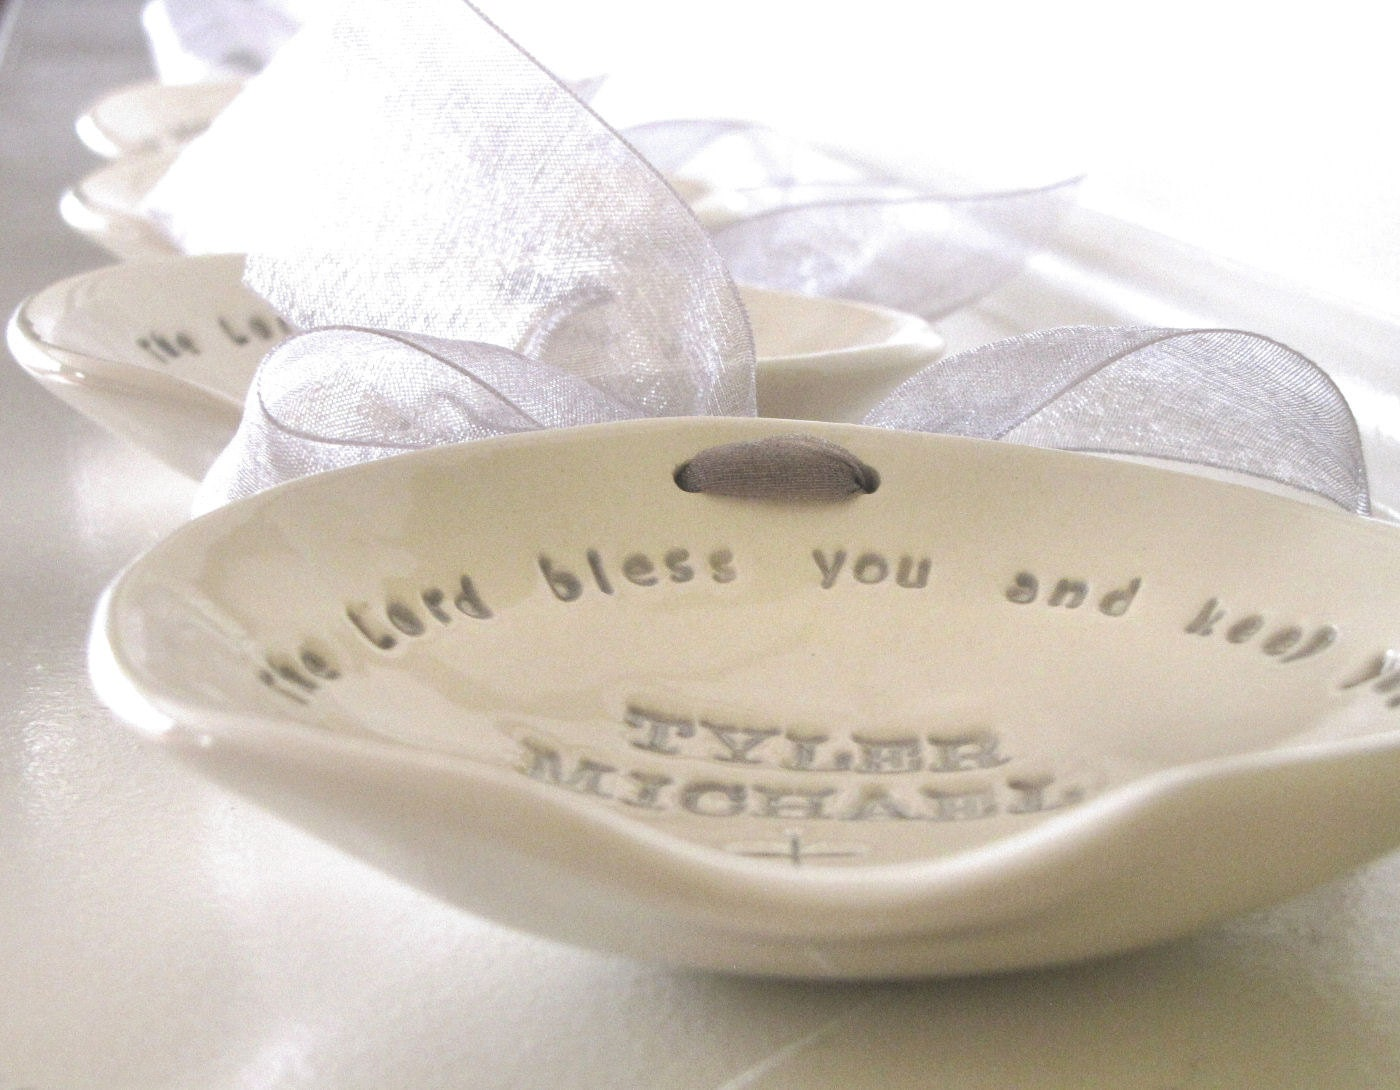 Which baptism gifts for boys are appropriate camermgq - Gifts for baby christening ideas ...